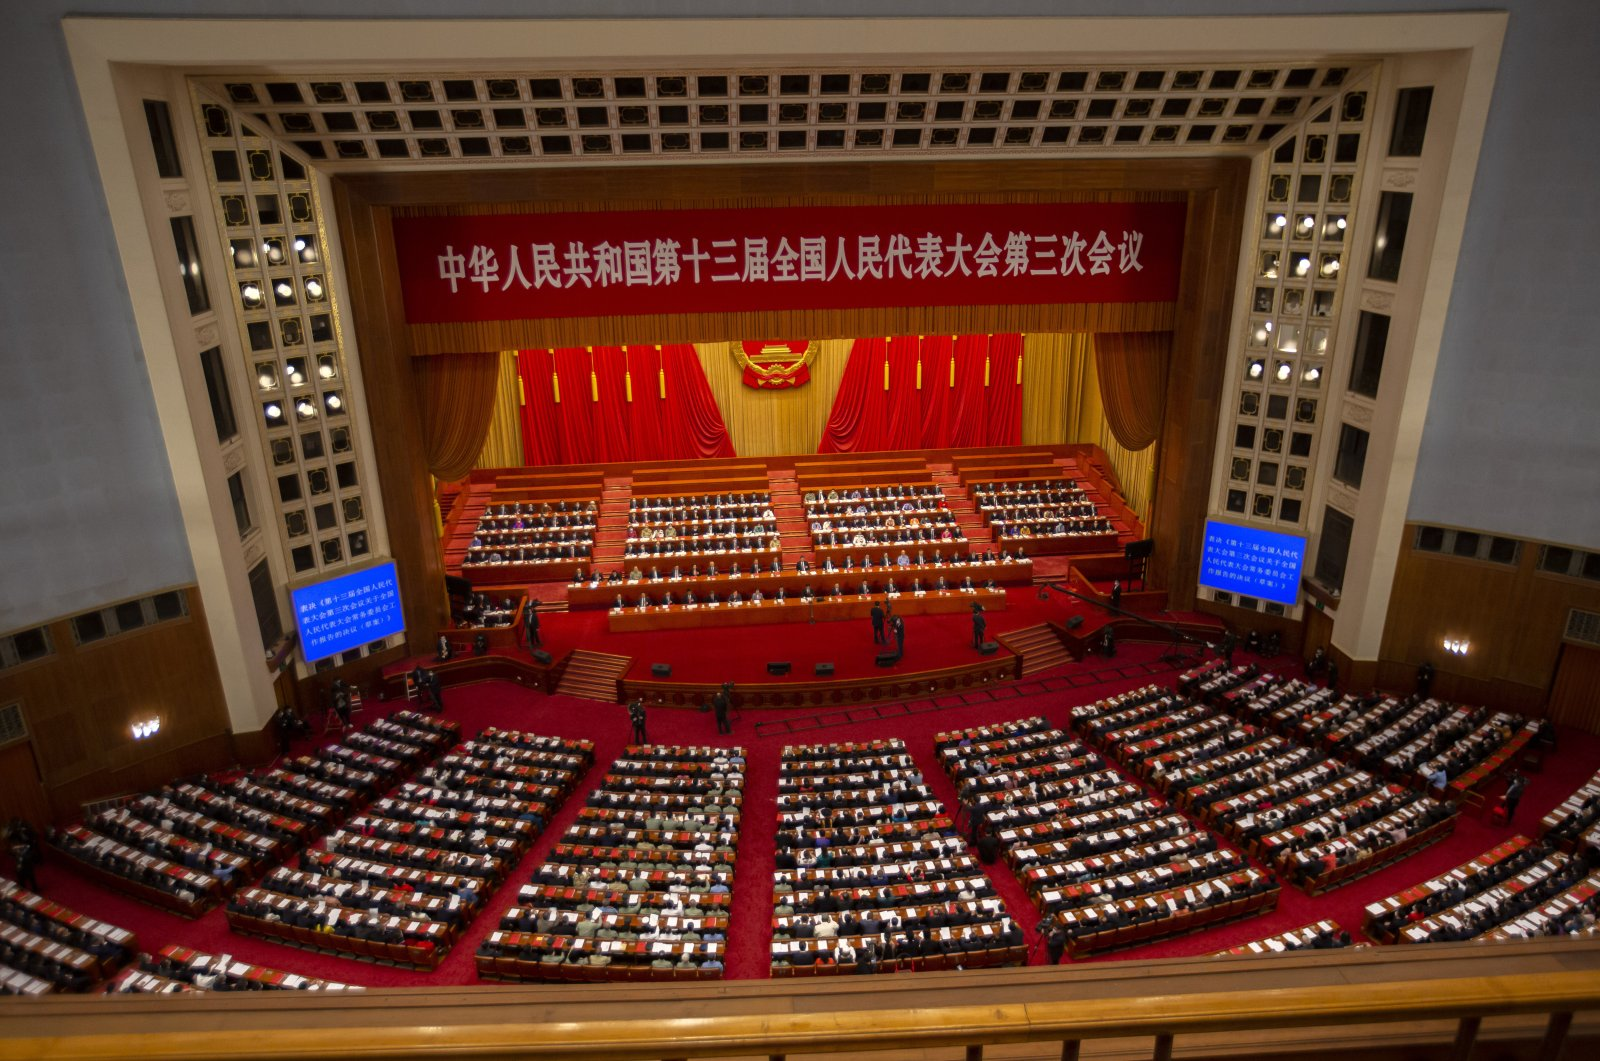 Delegates and Chinese leaders attend the closing session of China's National People's Congress (NPC) in Beijing, Thursday, May 28, 2020. China's ceremonial legislature has endorsed a national security law for Hong Kong that has strained relations with the United States and Britain. (AP Photo)